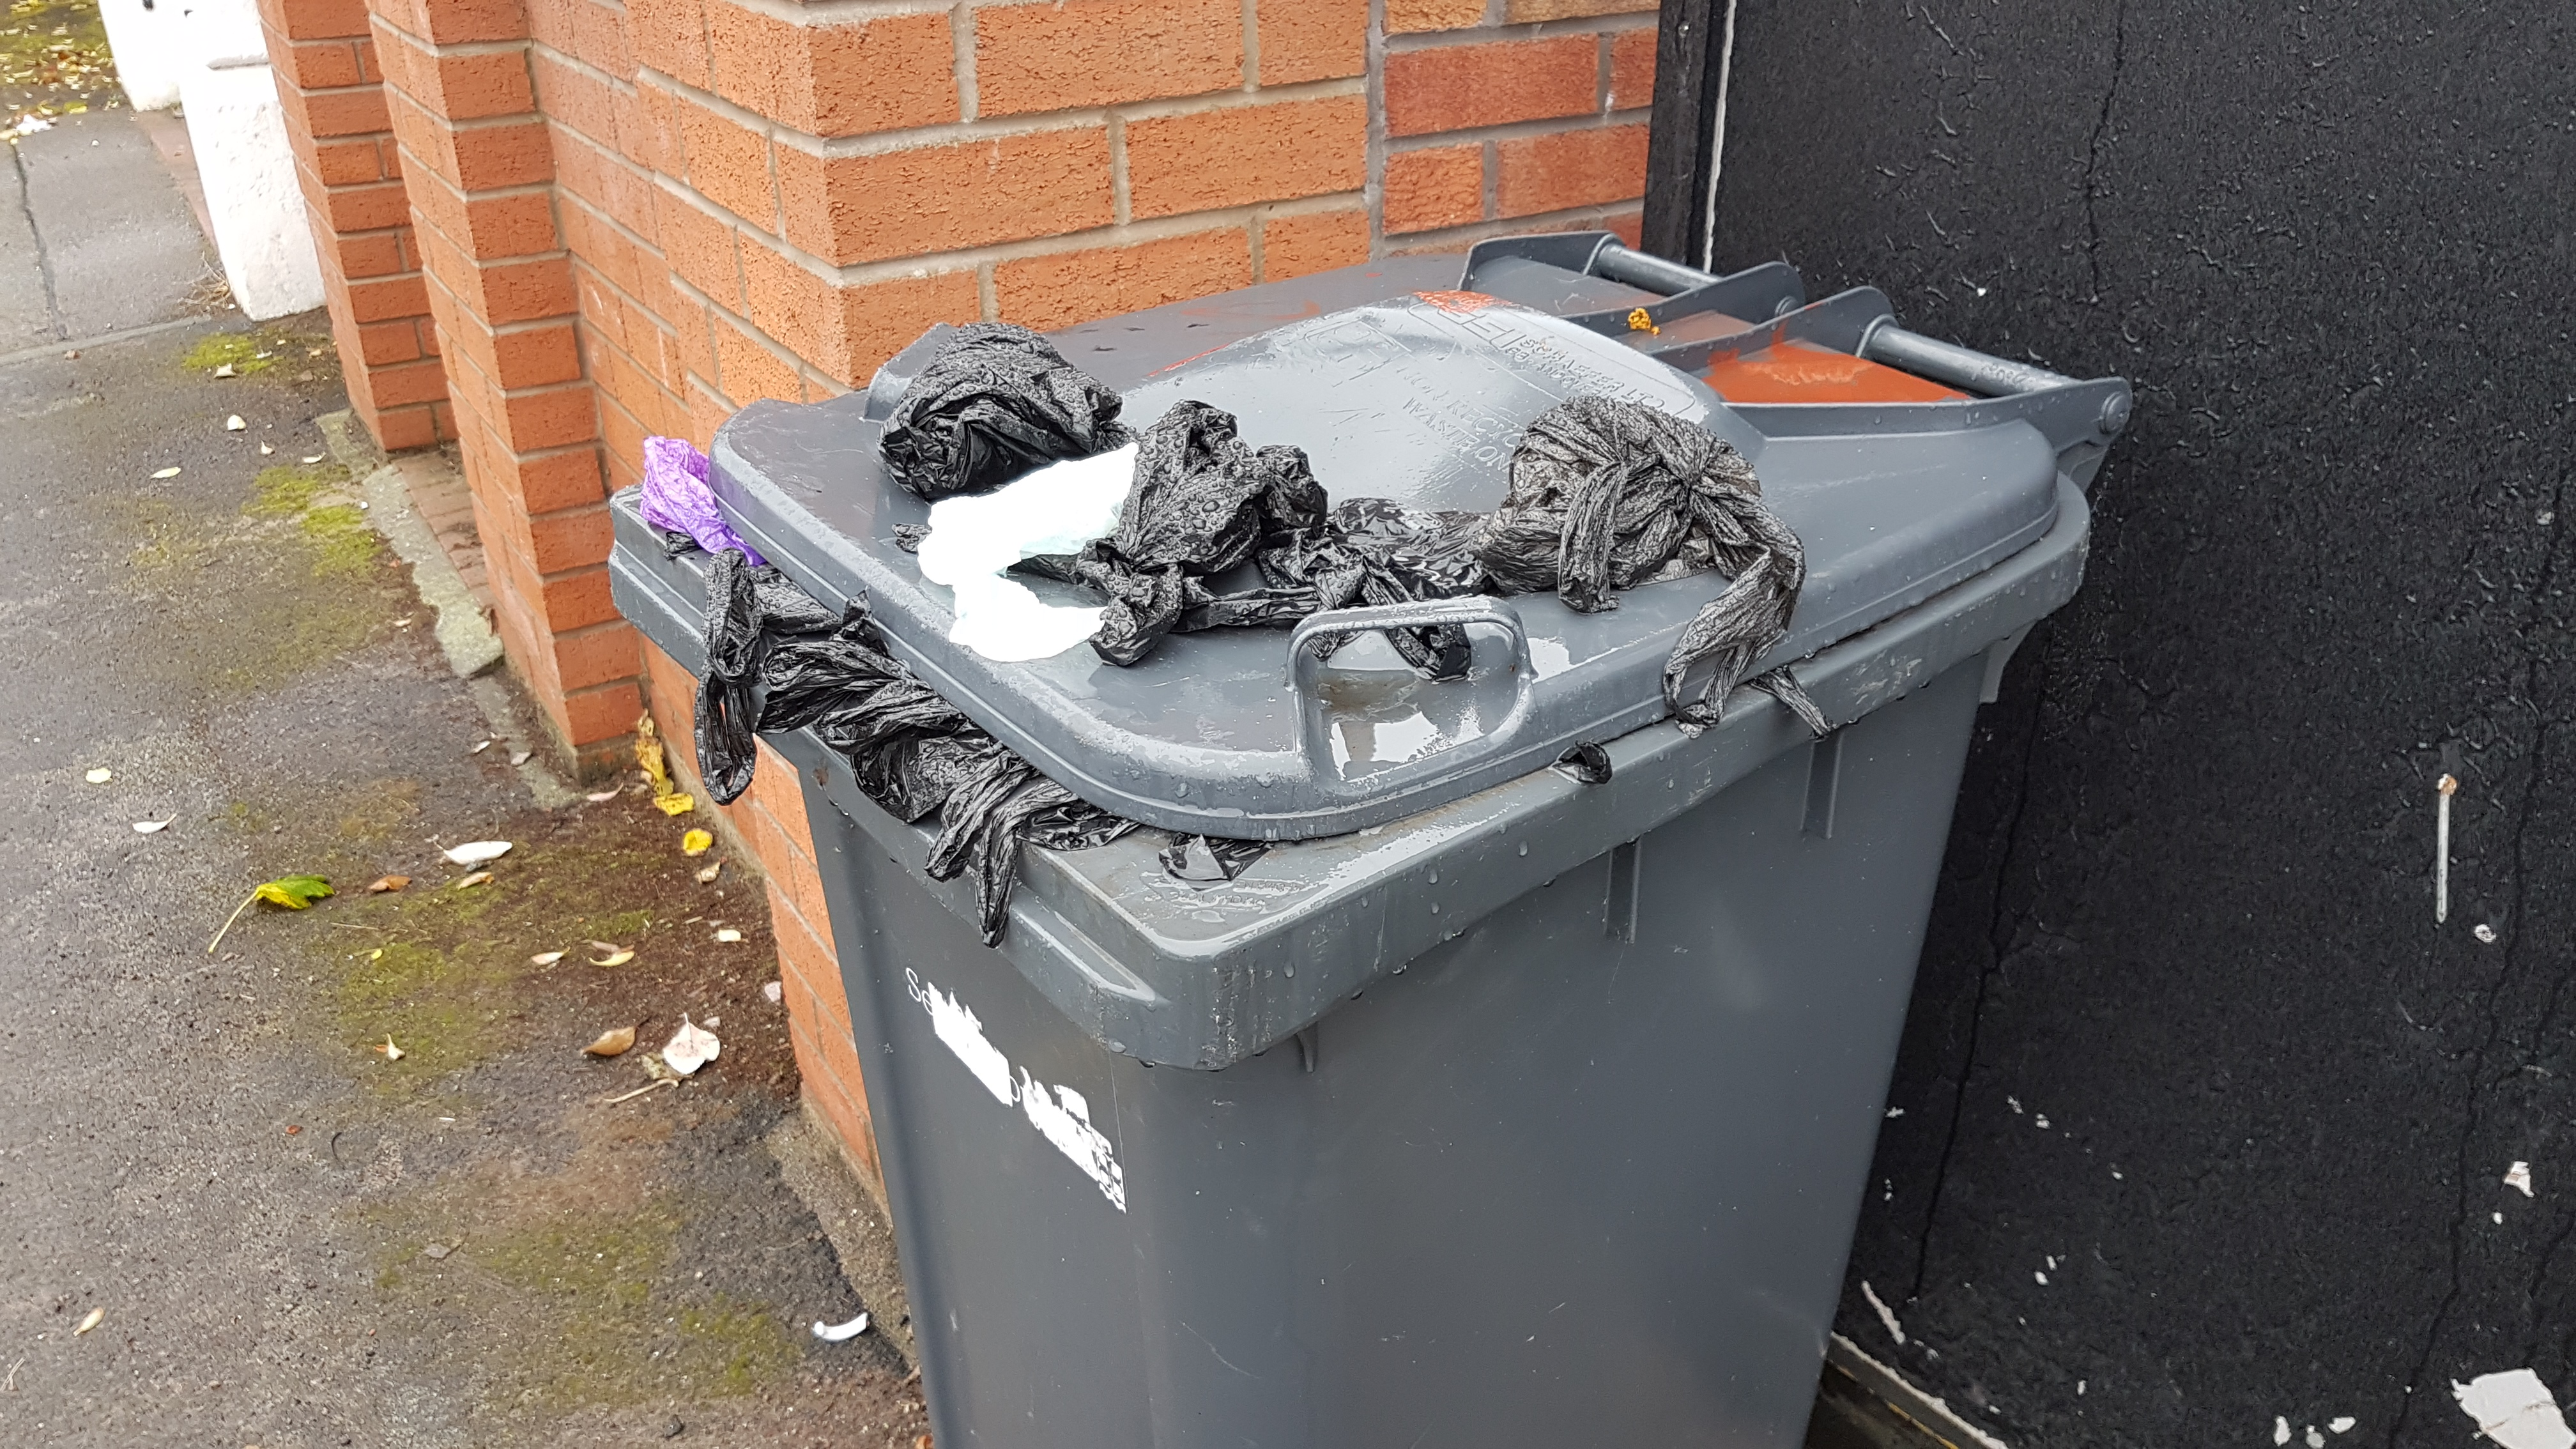 Thoughtless dog owners have filled a wheelie bin in Oxford Road with bags of dog poo.    The bin is now full so the dog owners have now started to place bags of poo on the lid.    Sefton Council have been informed of this health hazard.